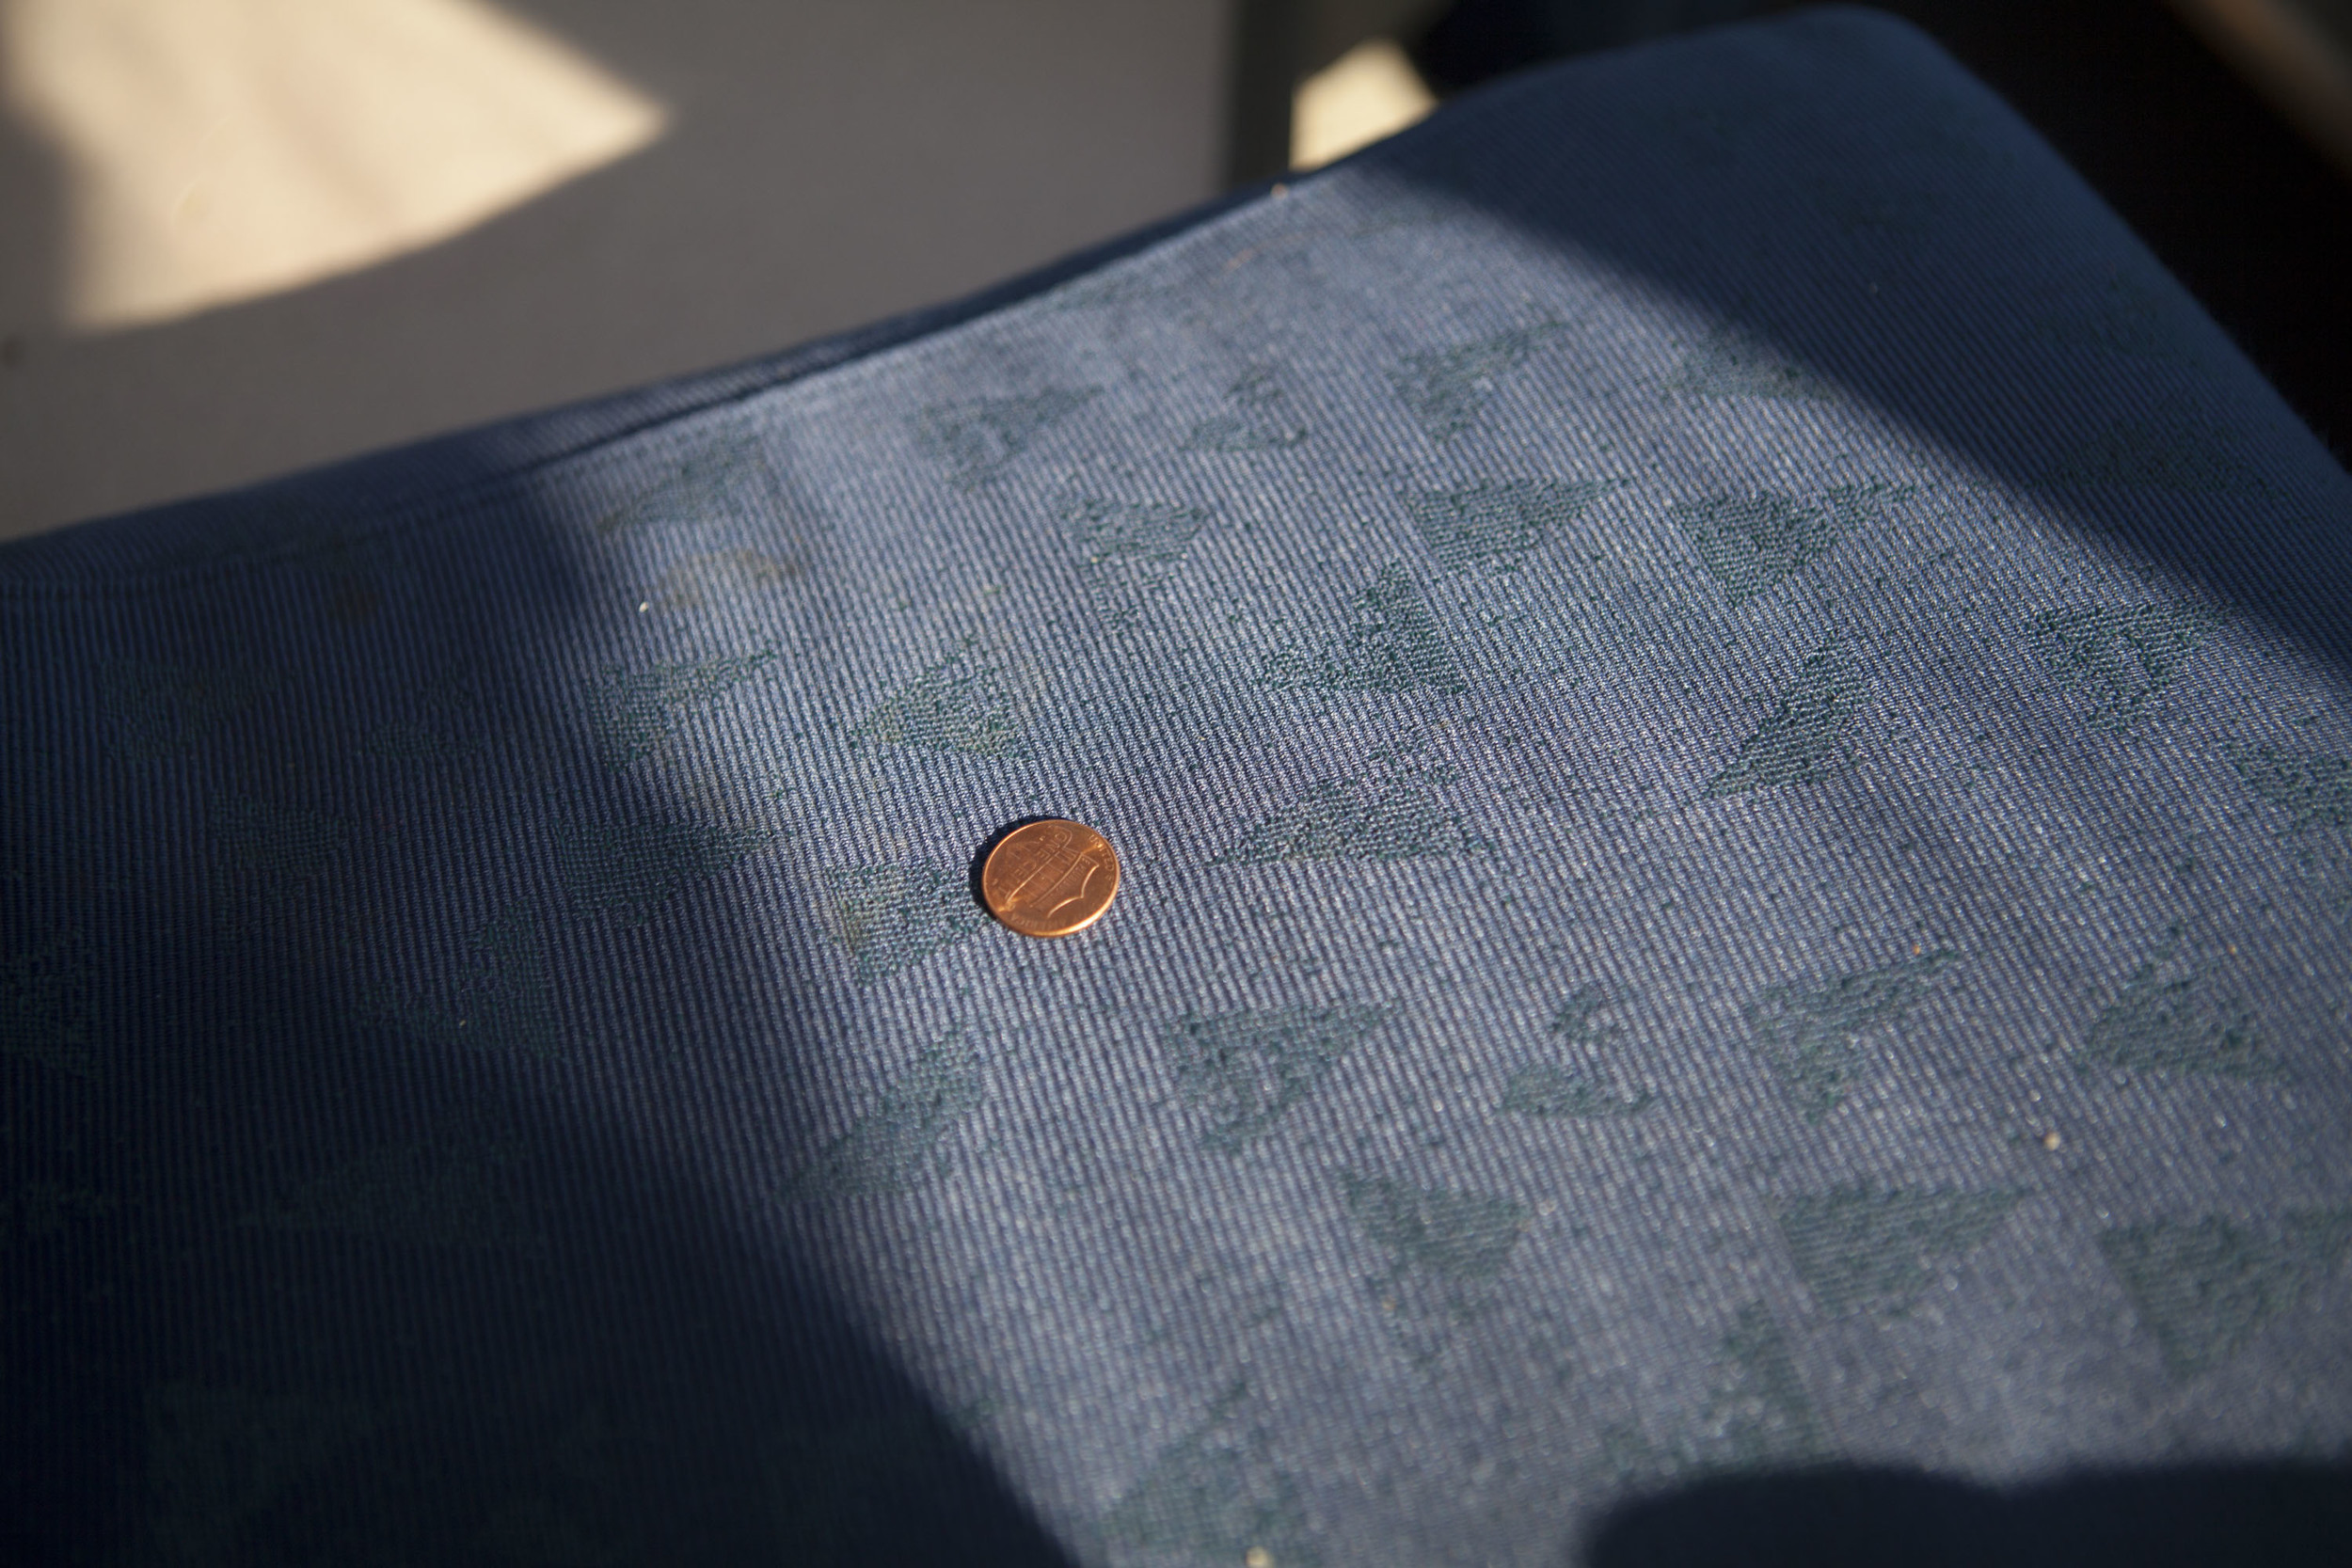 Parting pic: lucky penny found on the chair when I first sat down in the observation car.